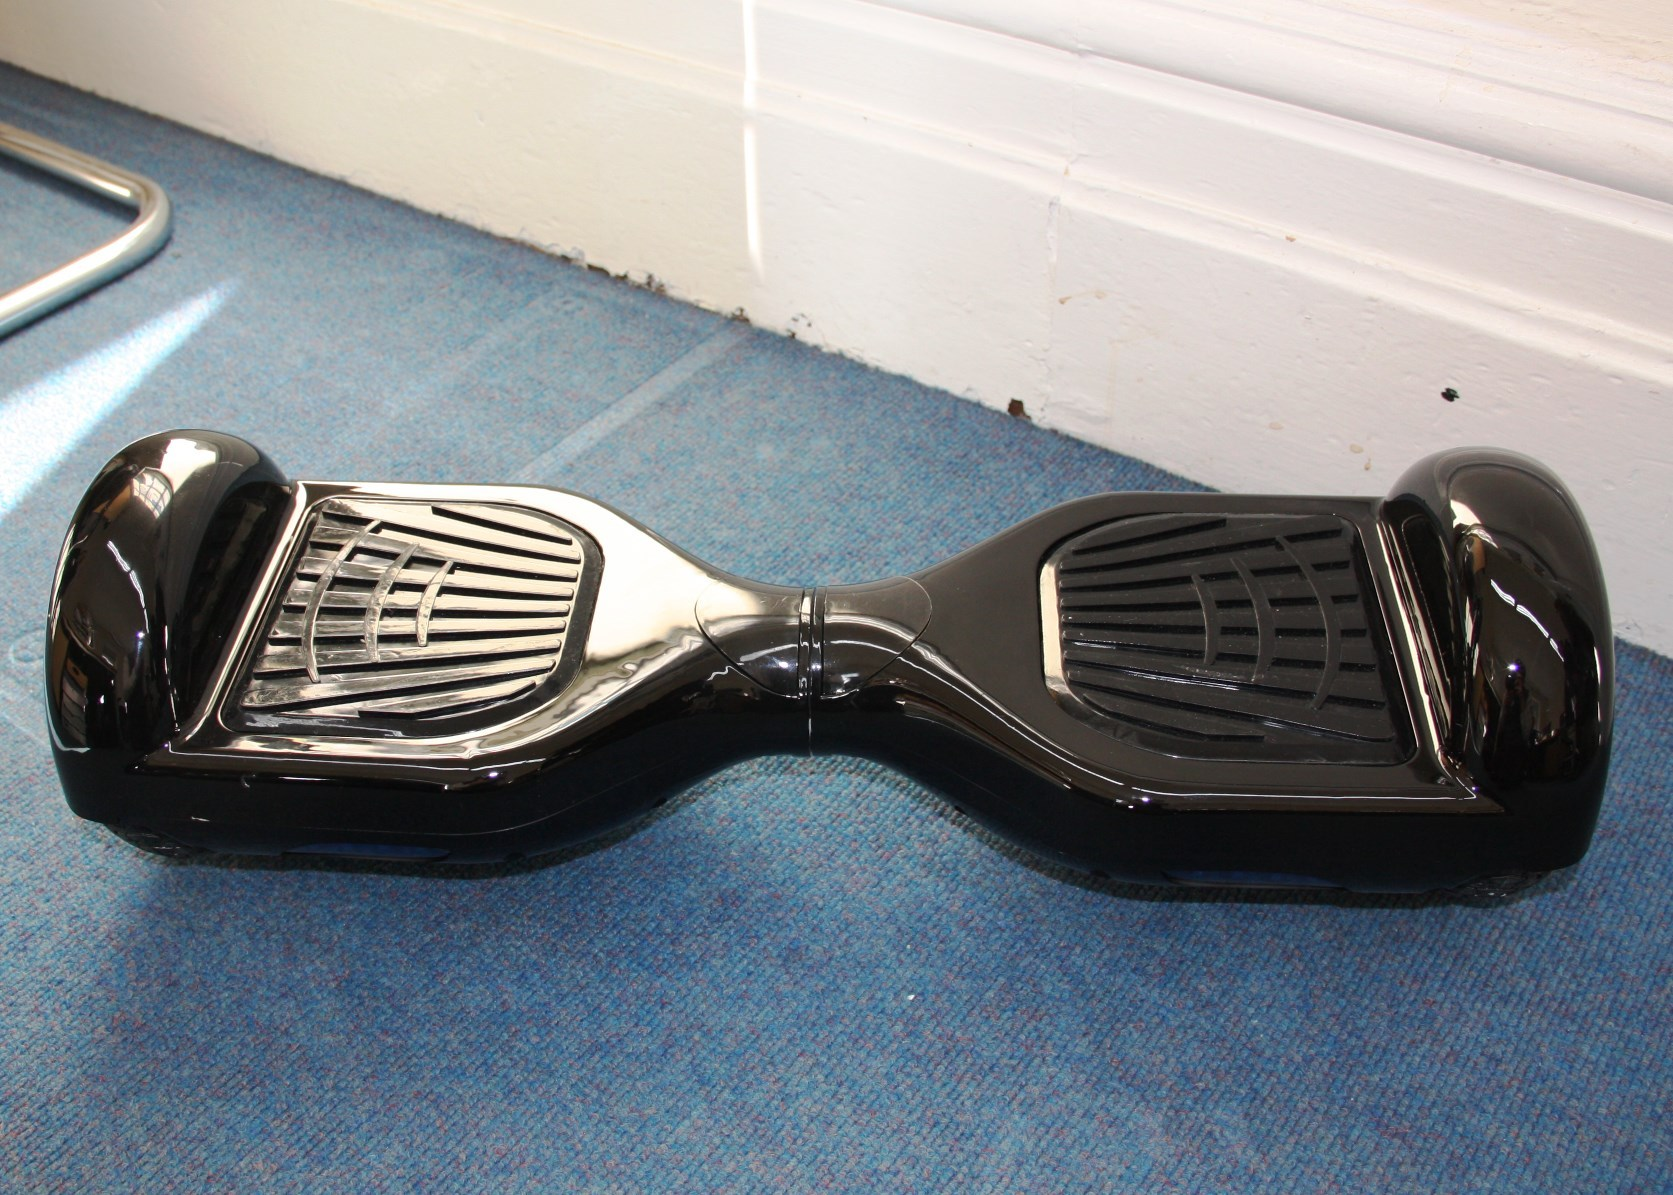 Buying a hoverboard for Christmas? This is the safety warning you ...